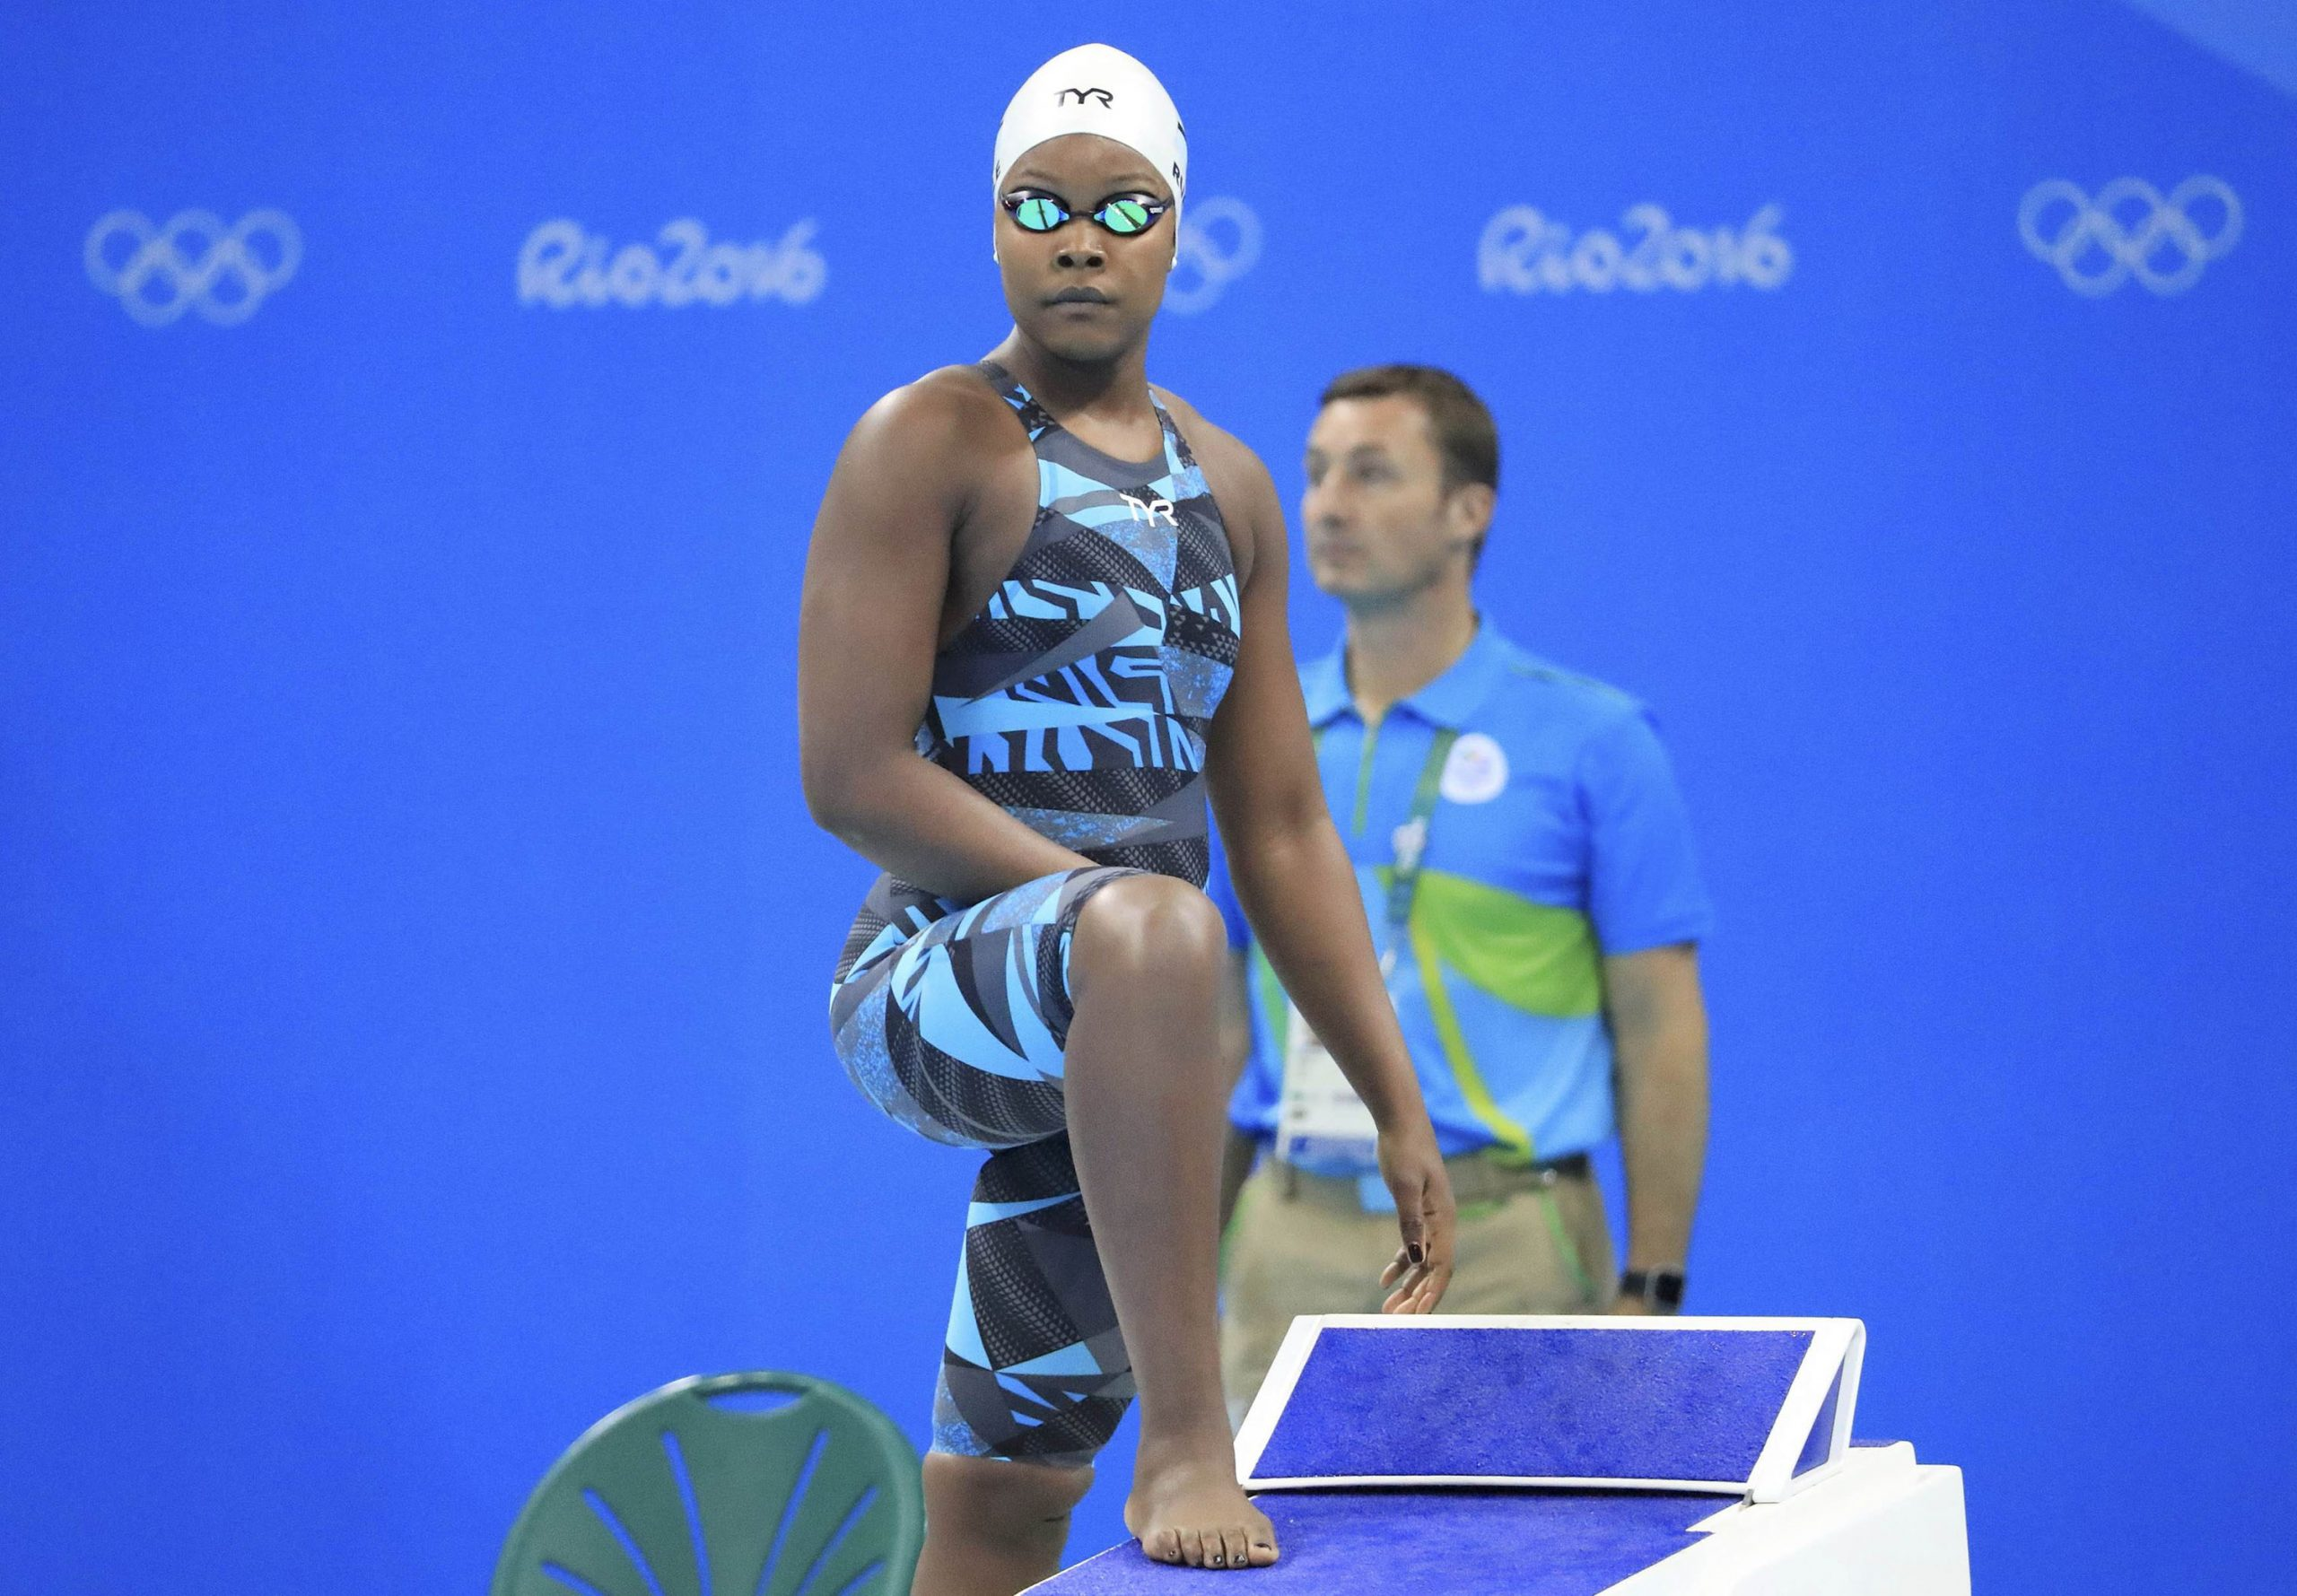 12 August 2016: Naomi Ruele on the starting block for the women's 50m freestyle heats at the 2016 Olympics in Rio de Janeiro, Brazil. (Photograph by Dominic Ebenbichler/ Reuters)